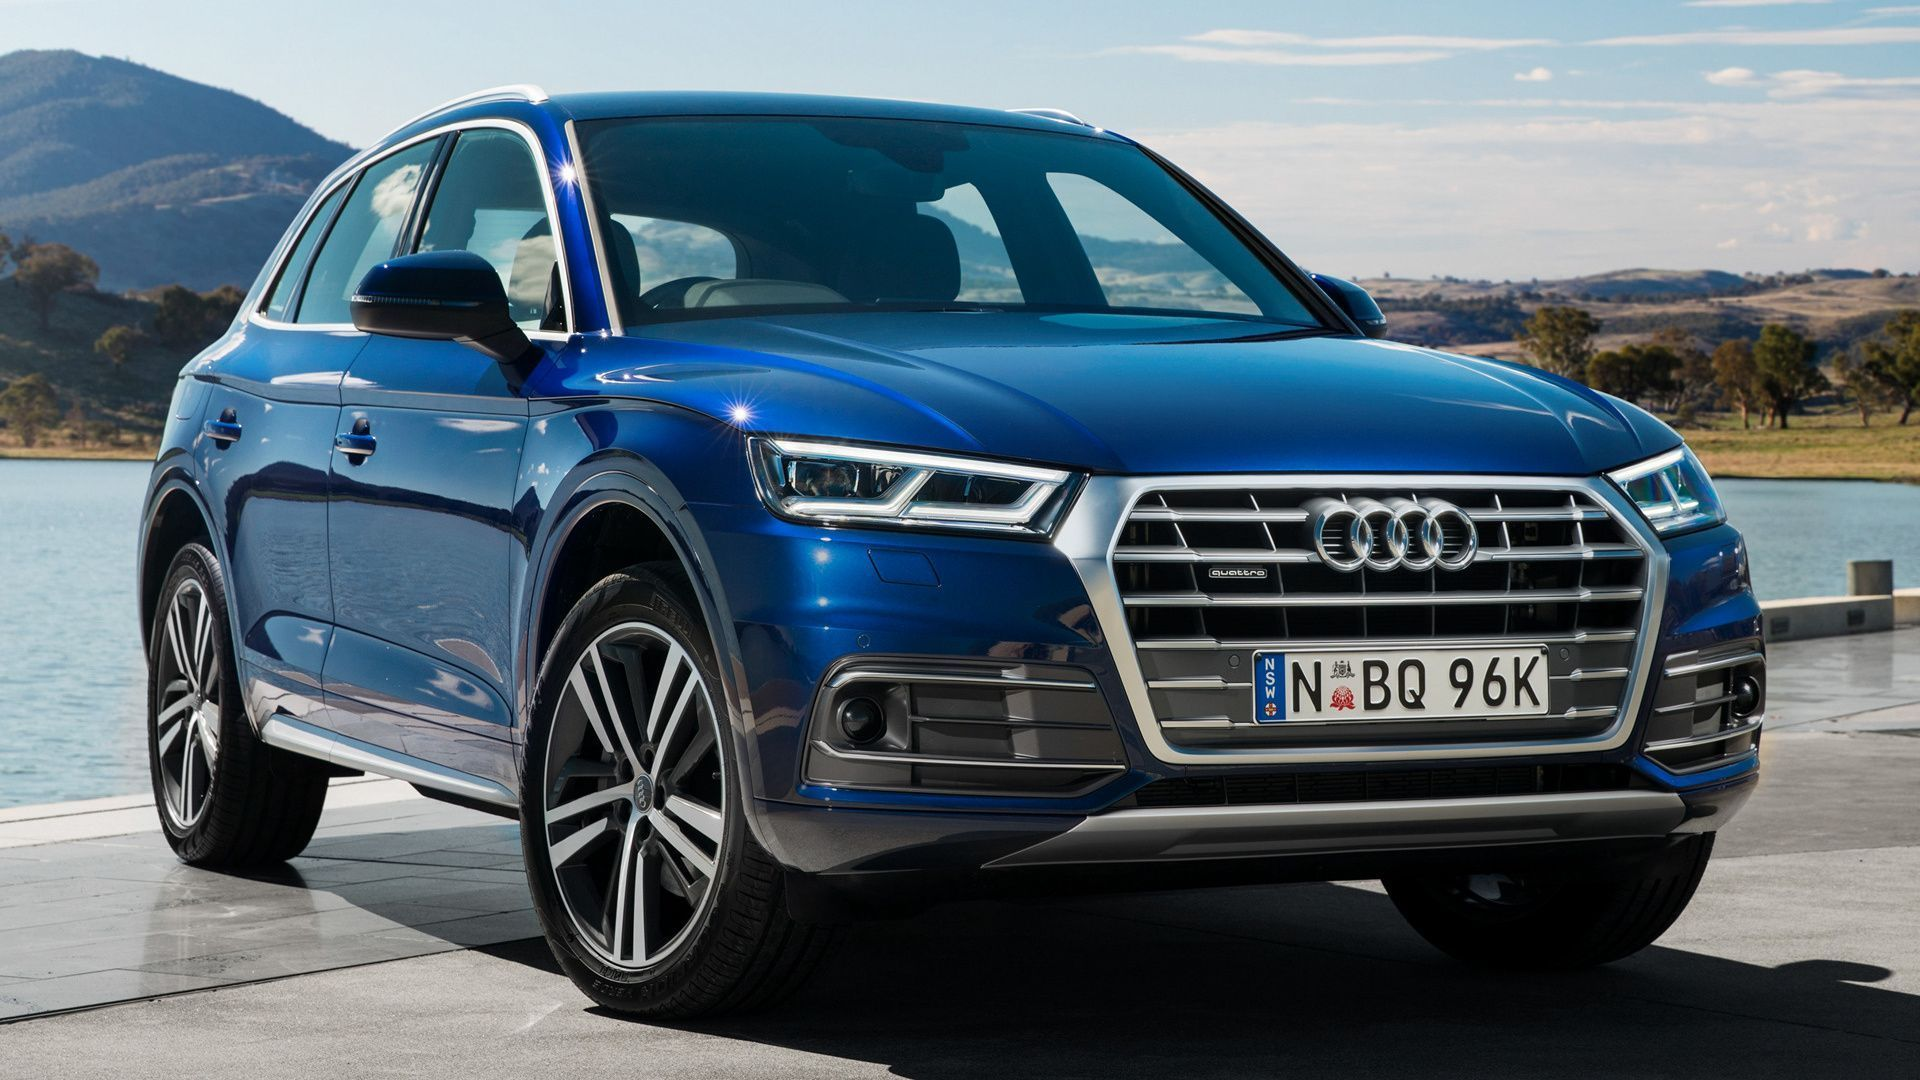 Tag For Audi Q5 Wallpapers Iphone : Free Download Audi Iphone